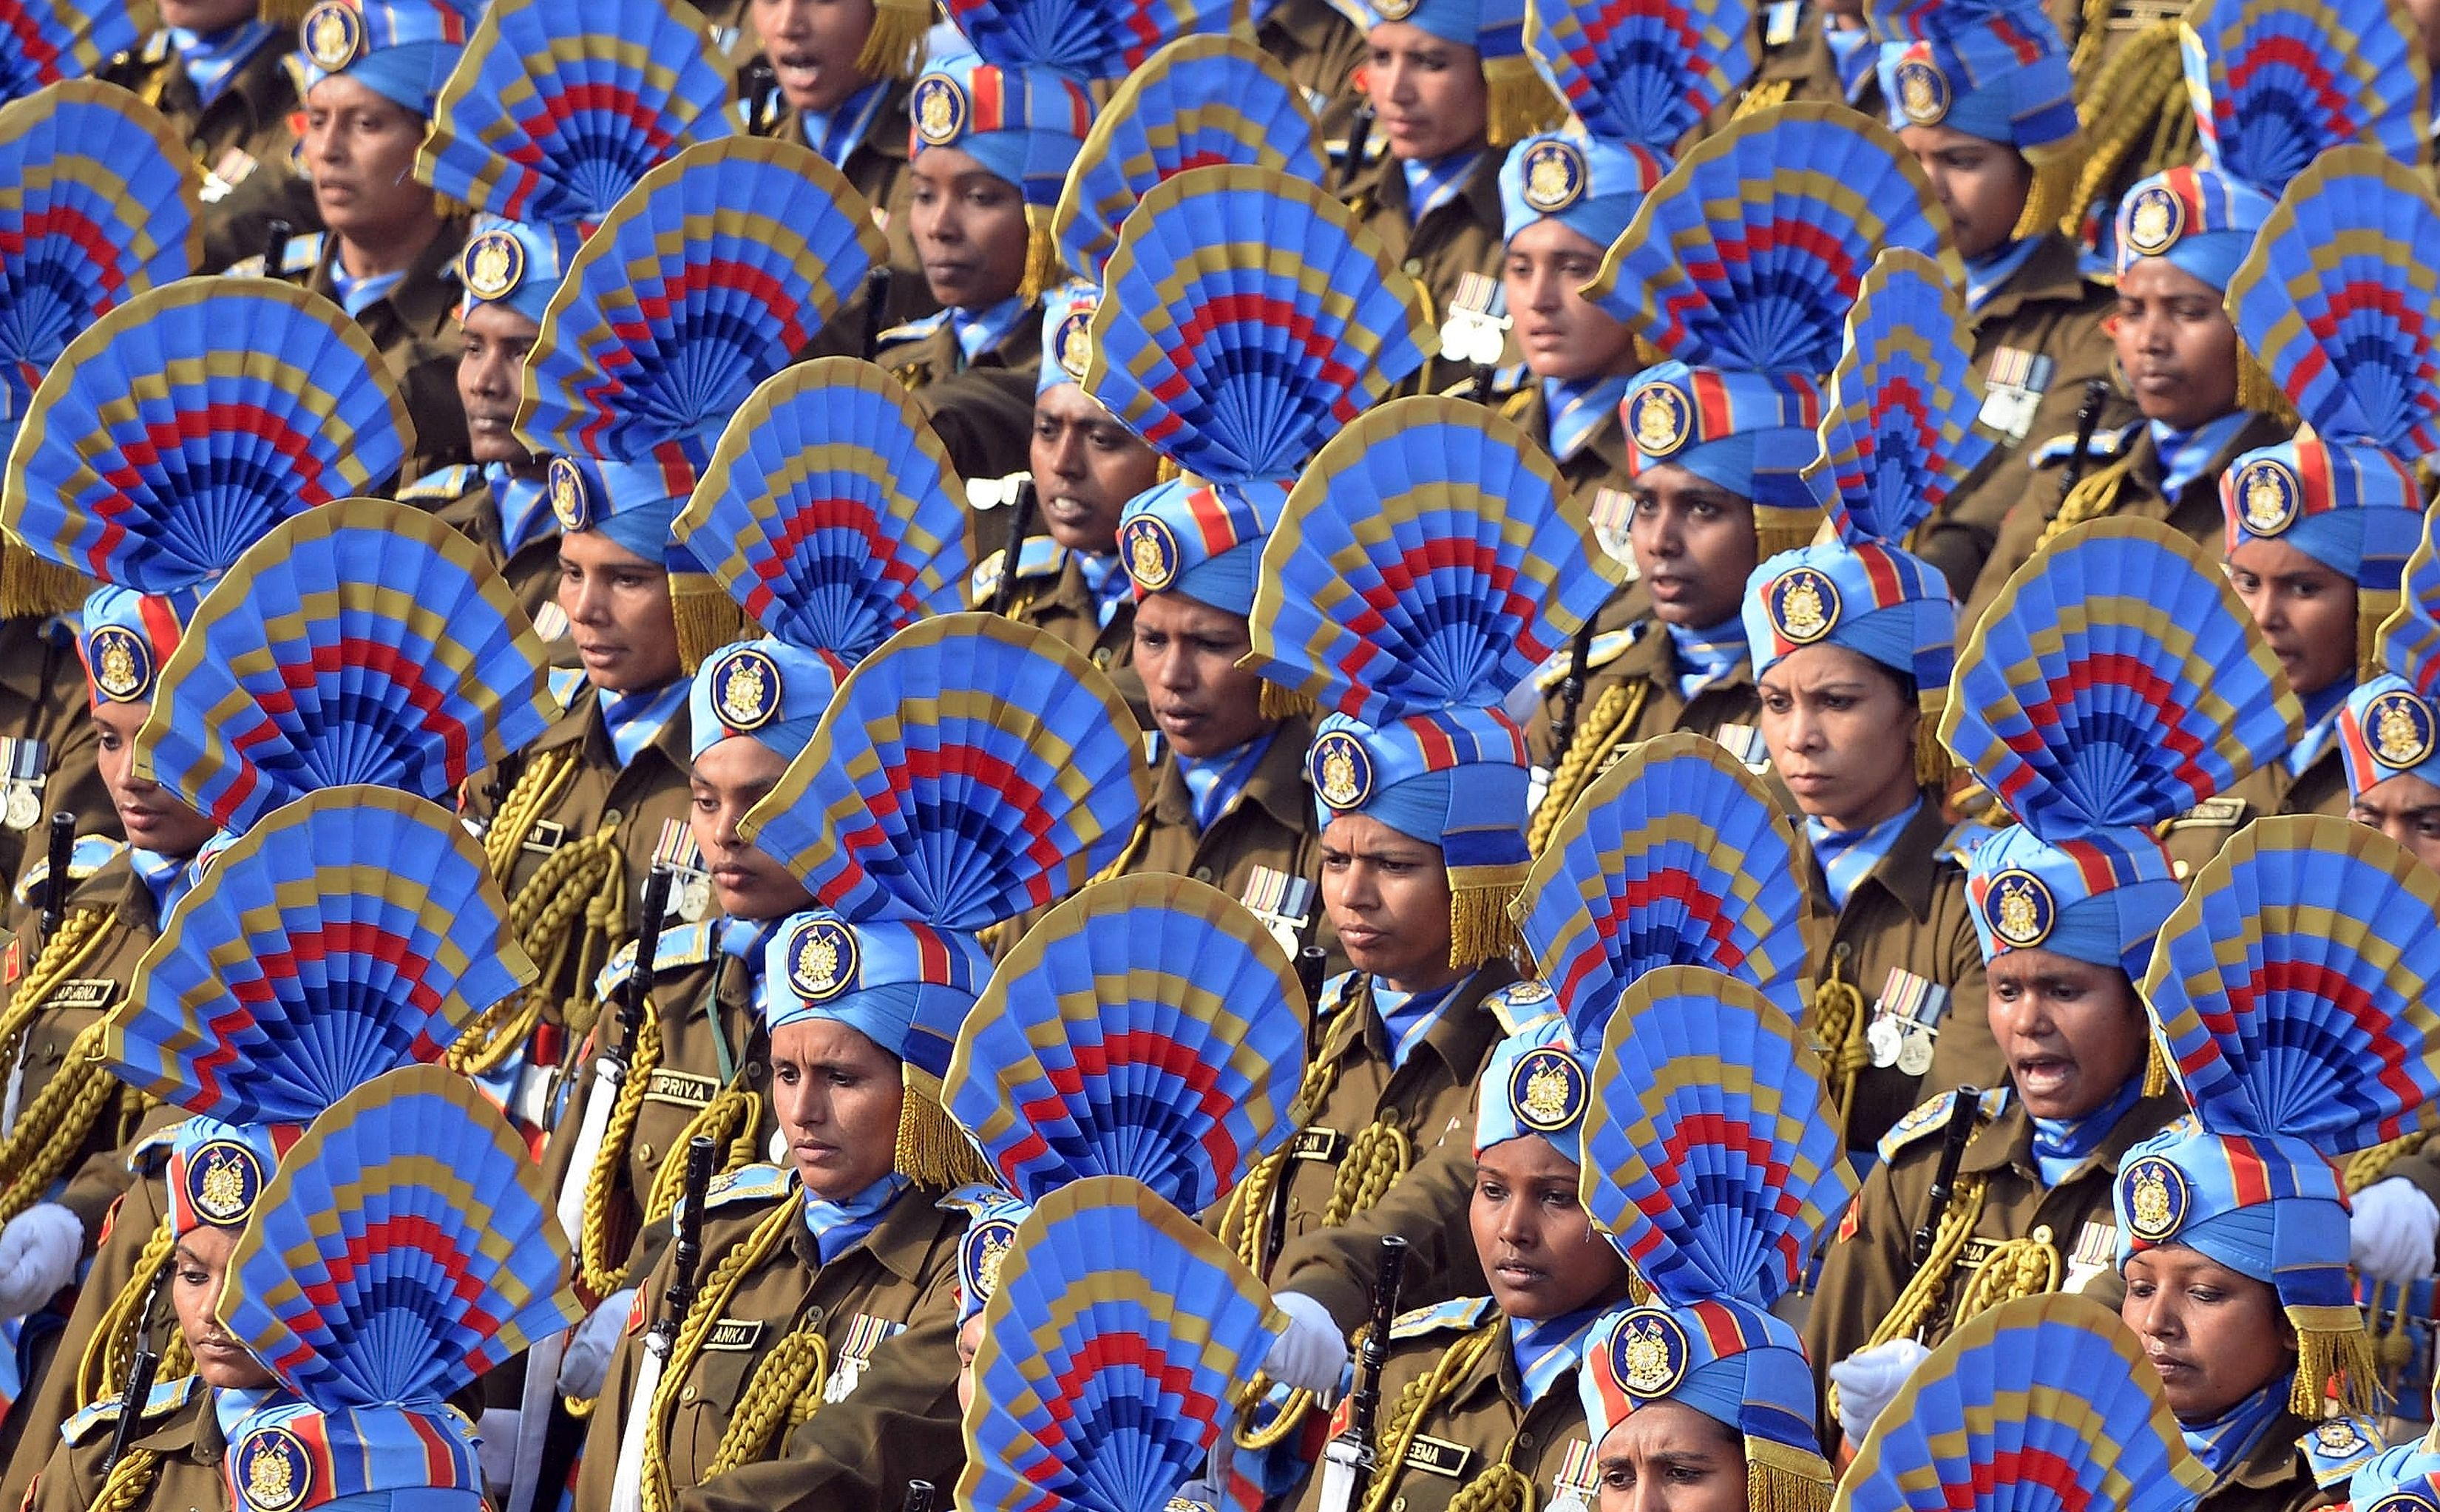 The Indian army women's contingent take part in the full dress rehearsal for the upcoming Indian Republic Day parade on Rajpath in New Delhi on Jan. 23, 2016